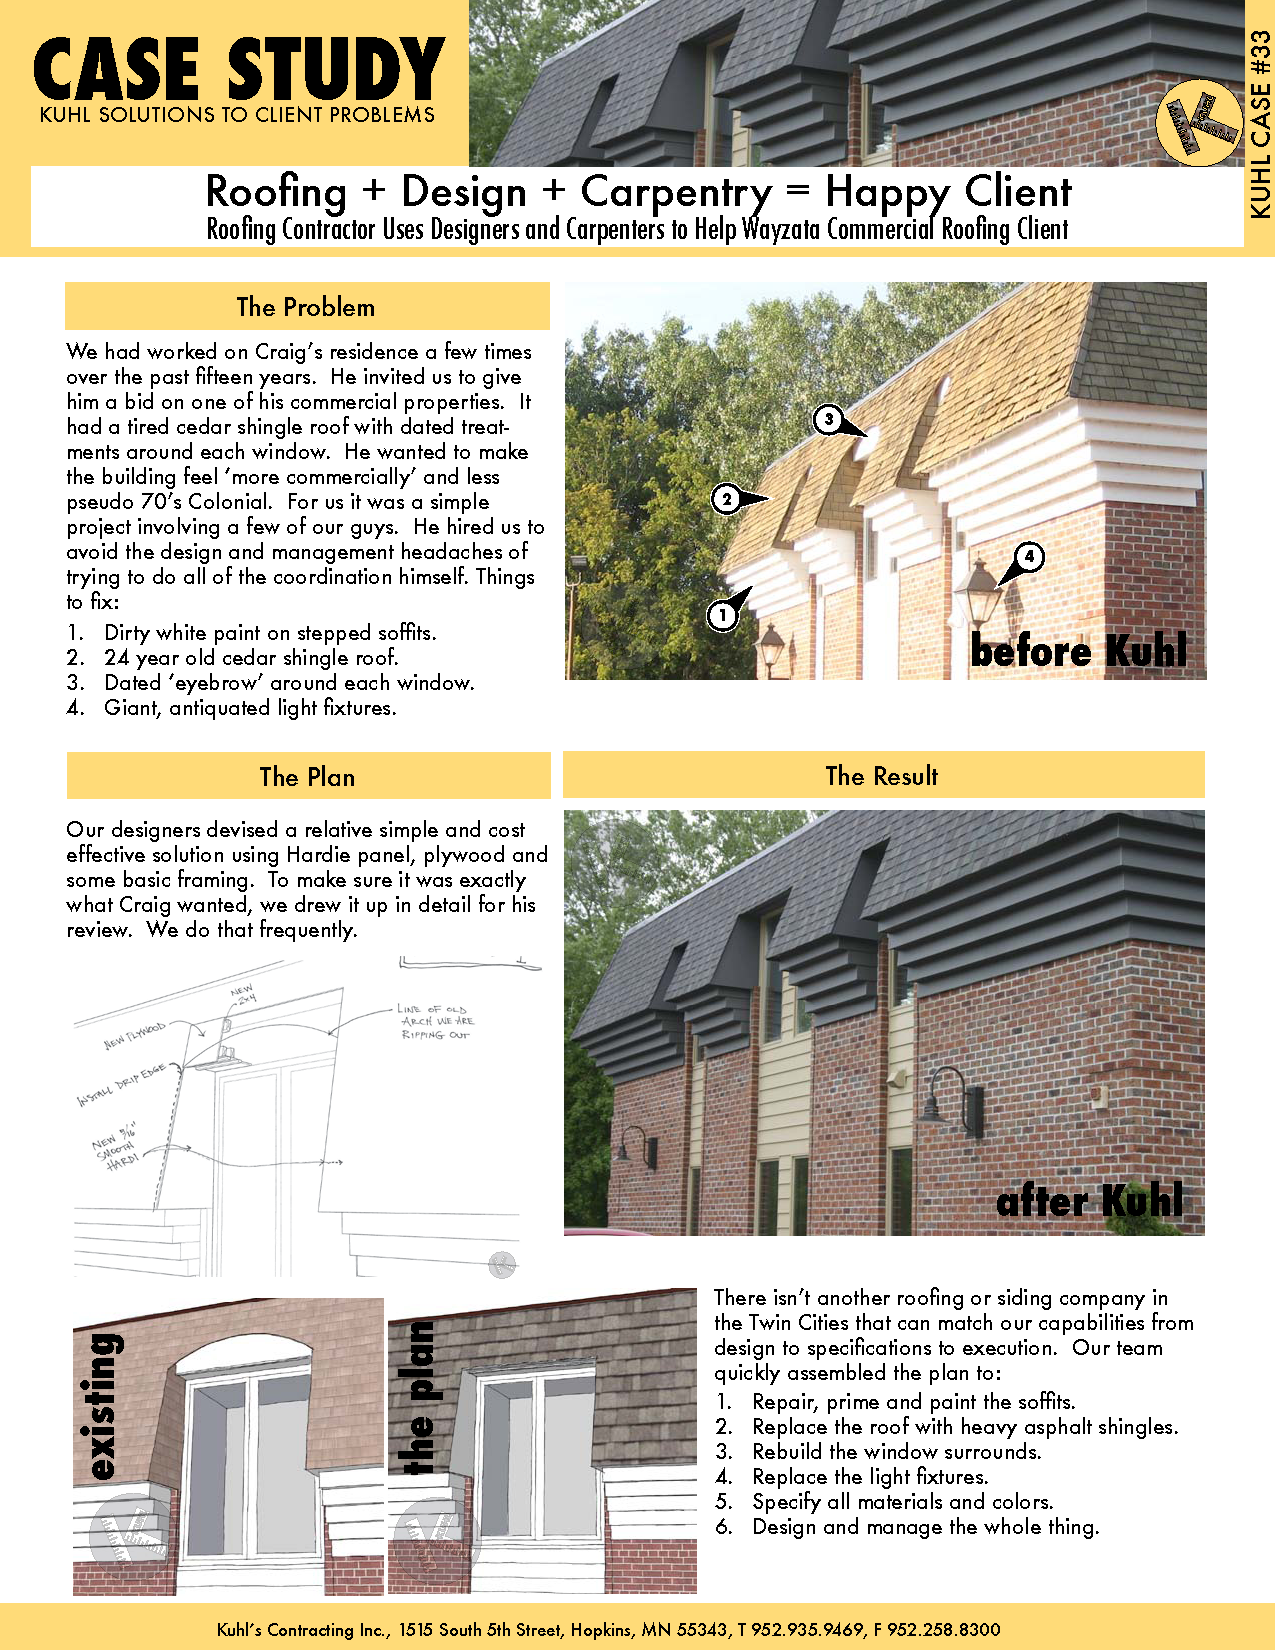 Roofing + Design + Carpentry = Happy Client